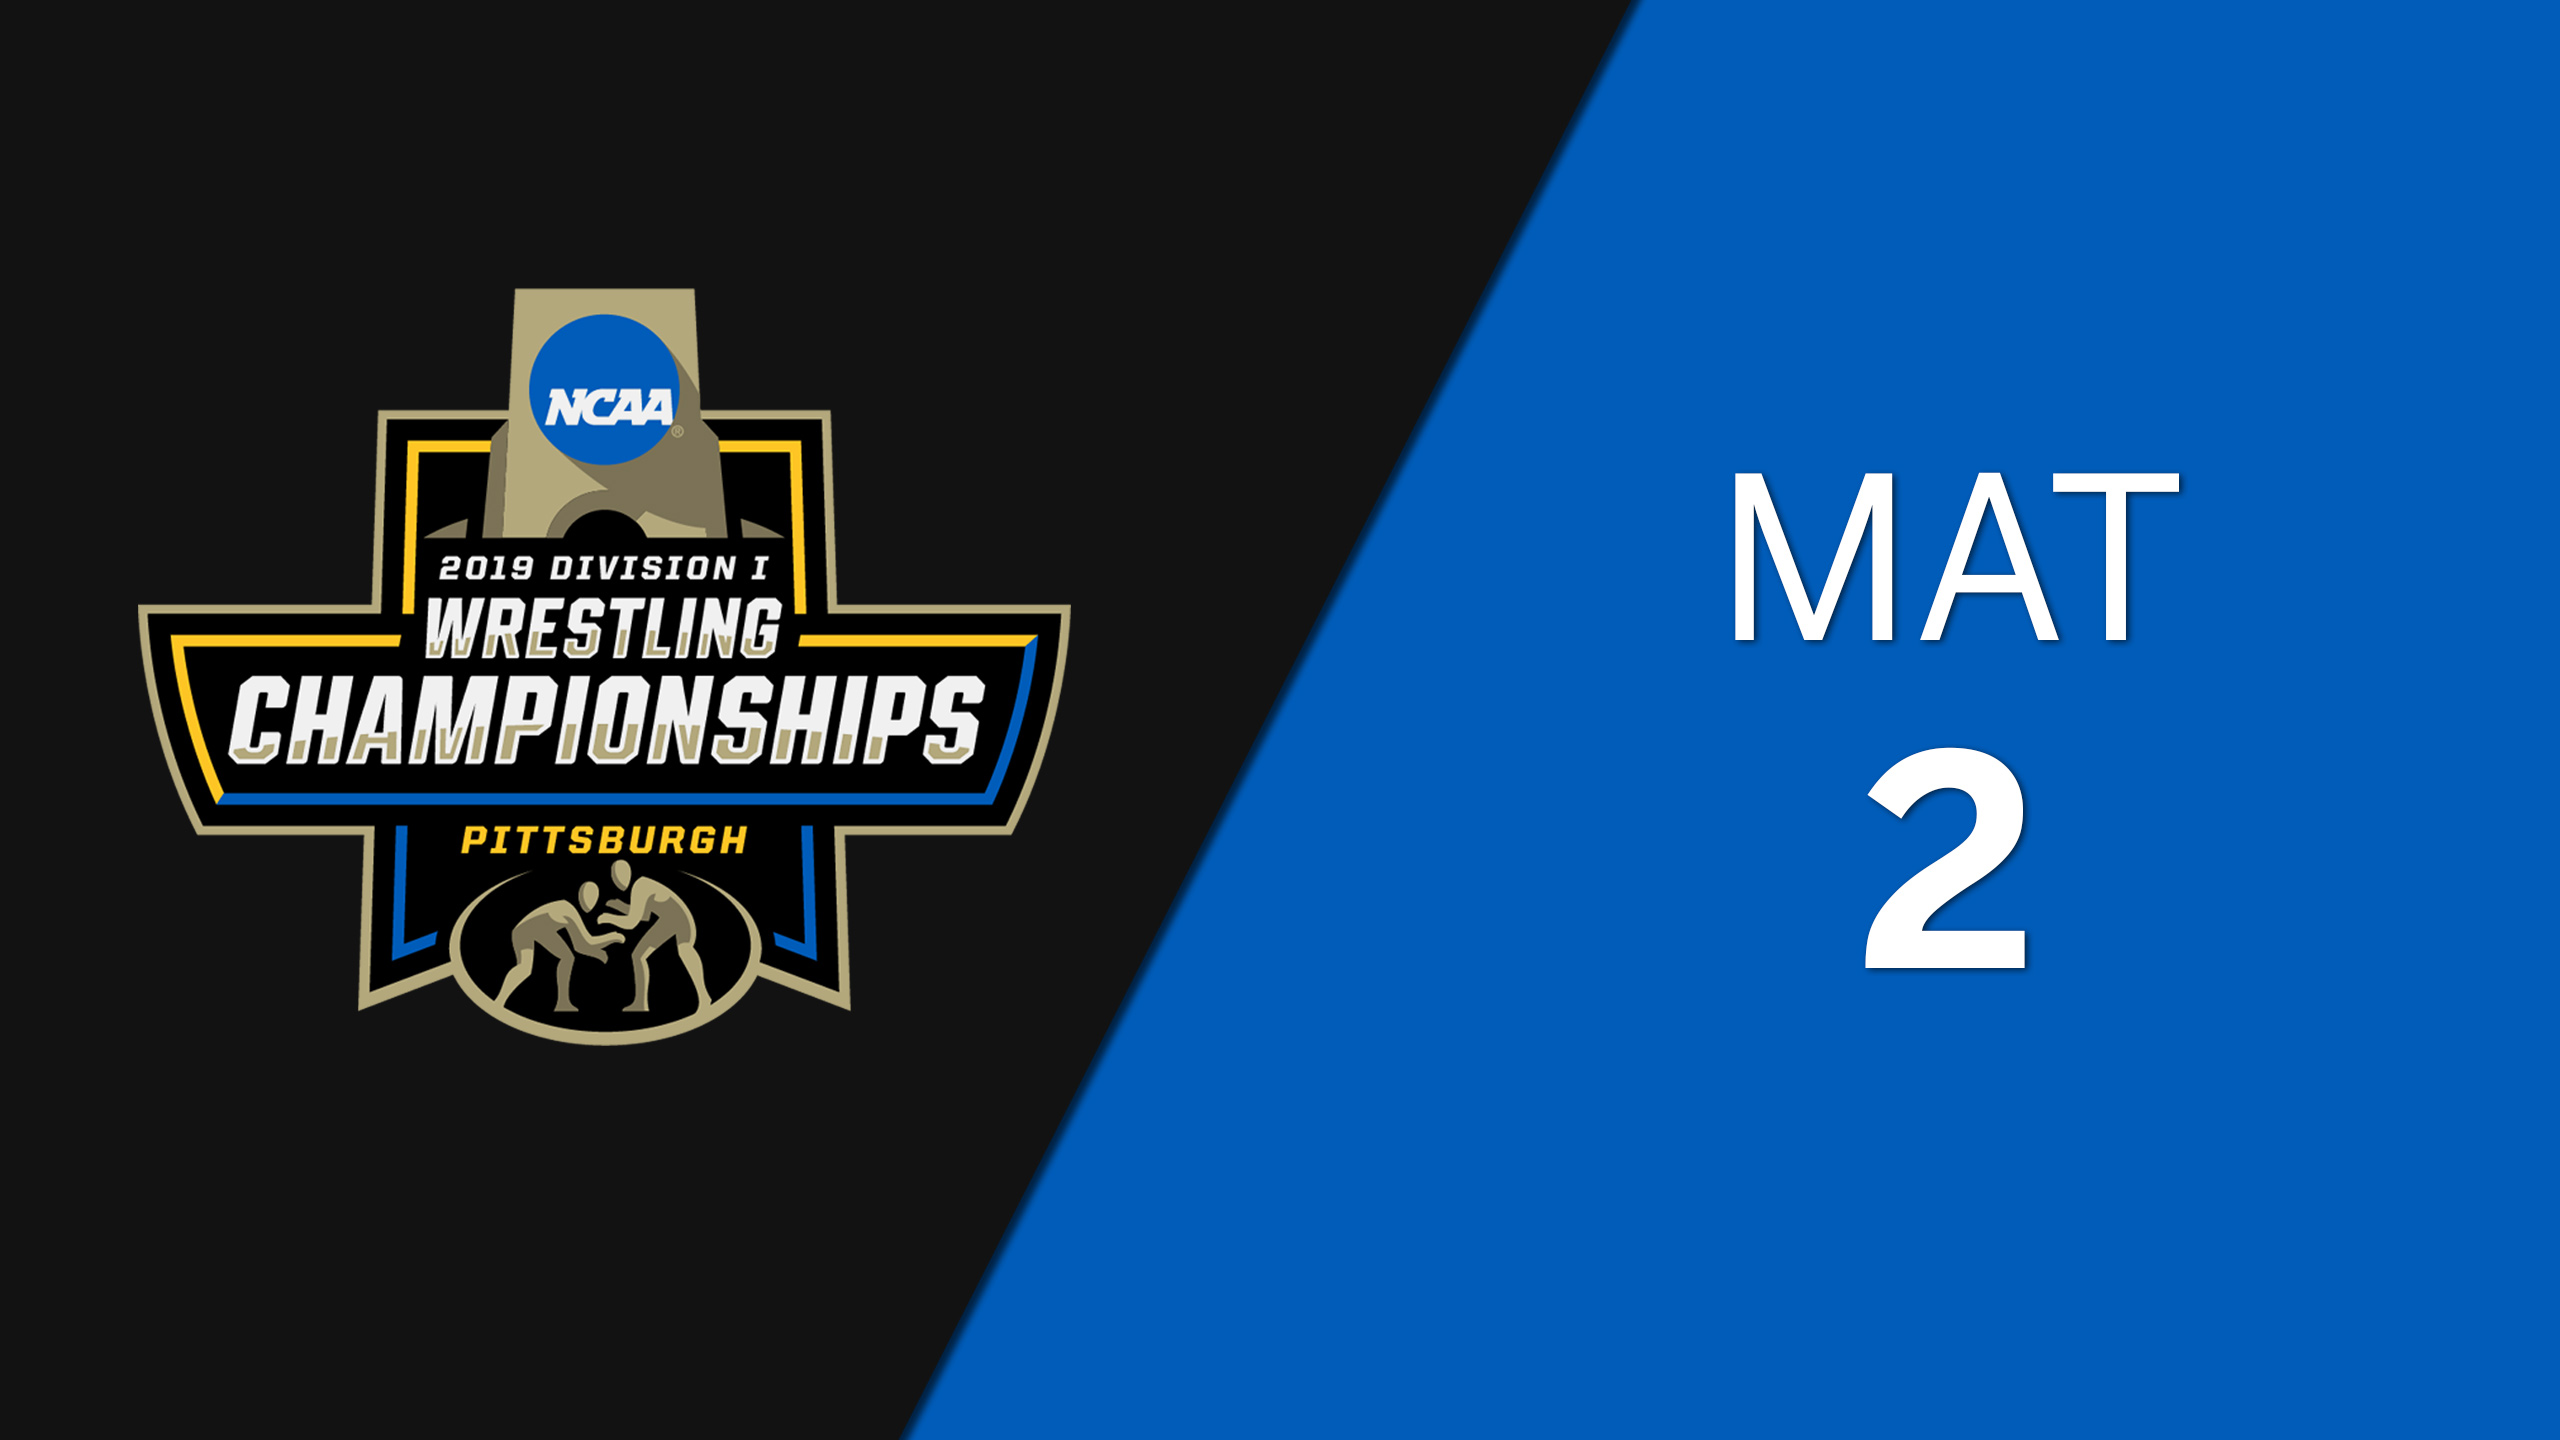 NCAA Wrestling Championship (Mat 2, Second Round)